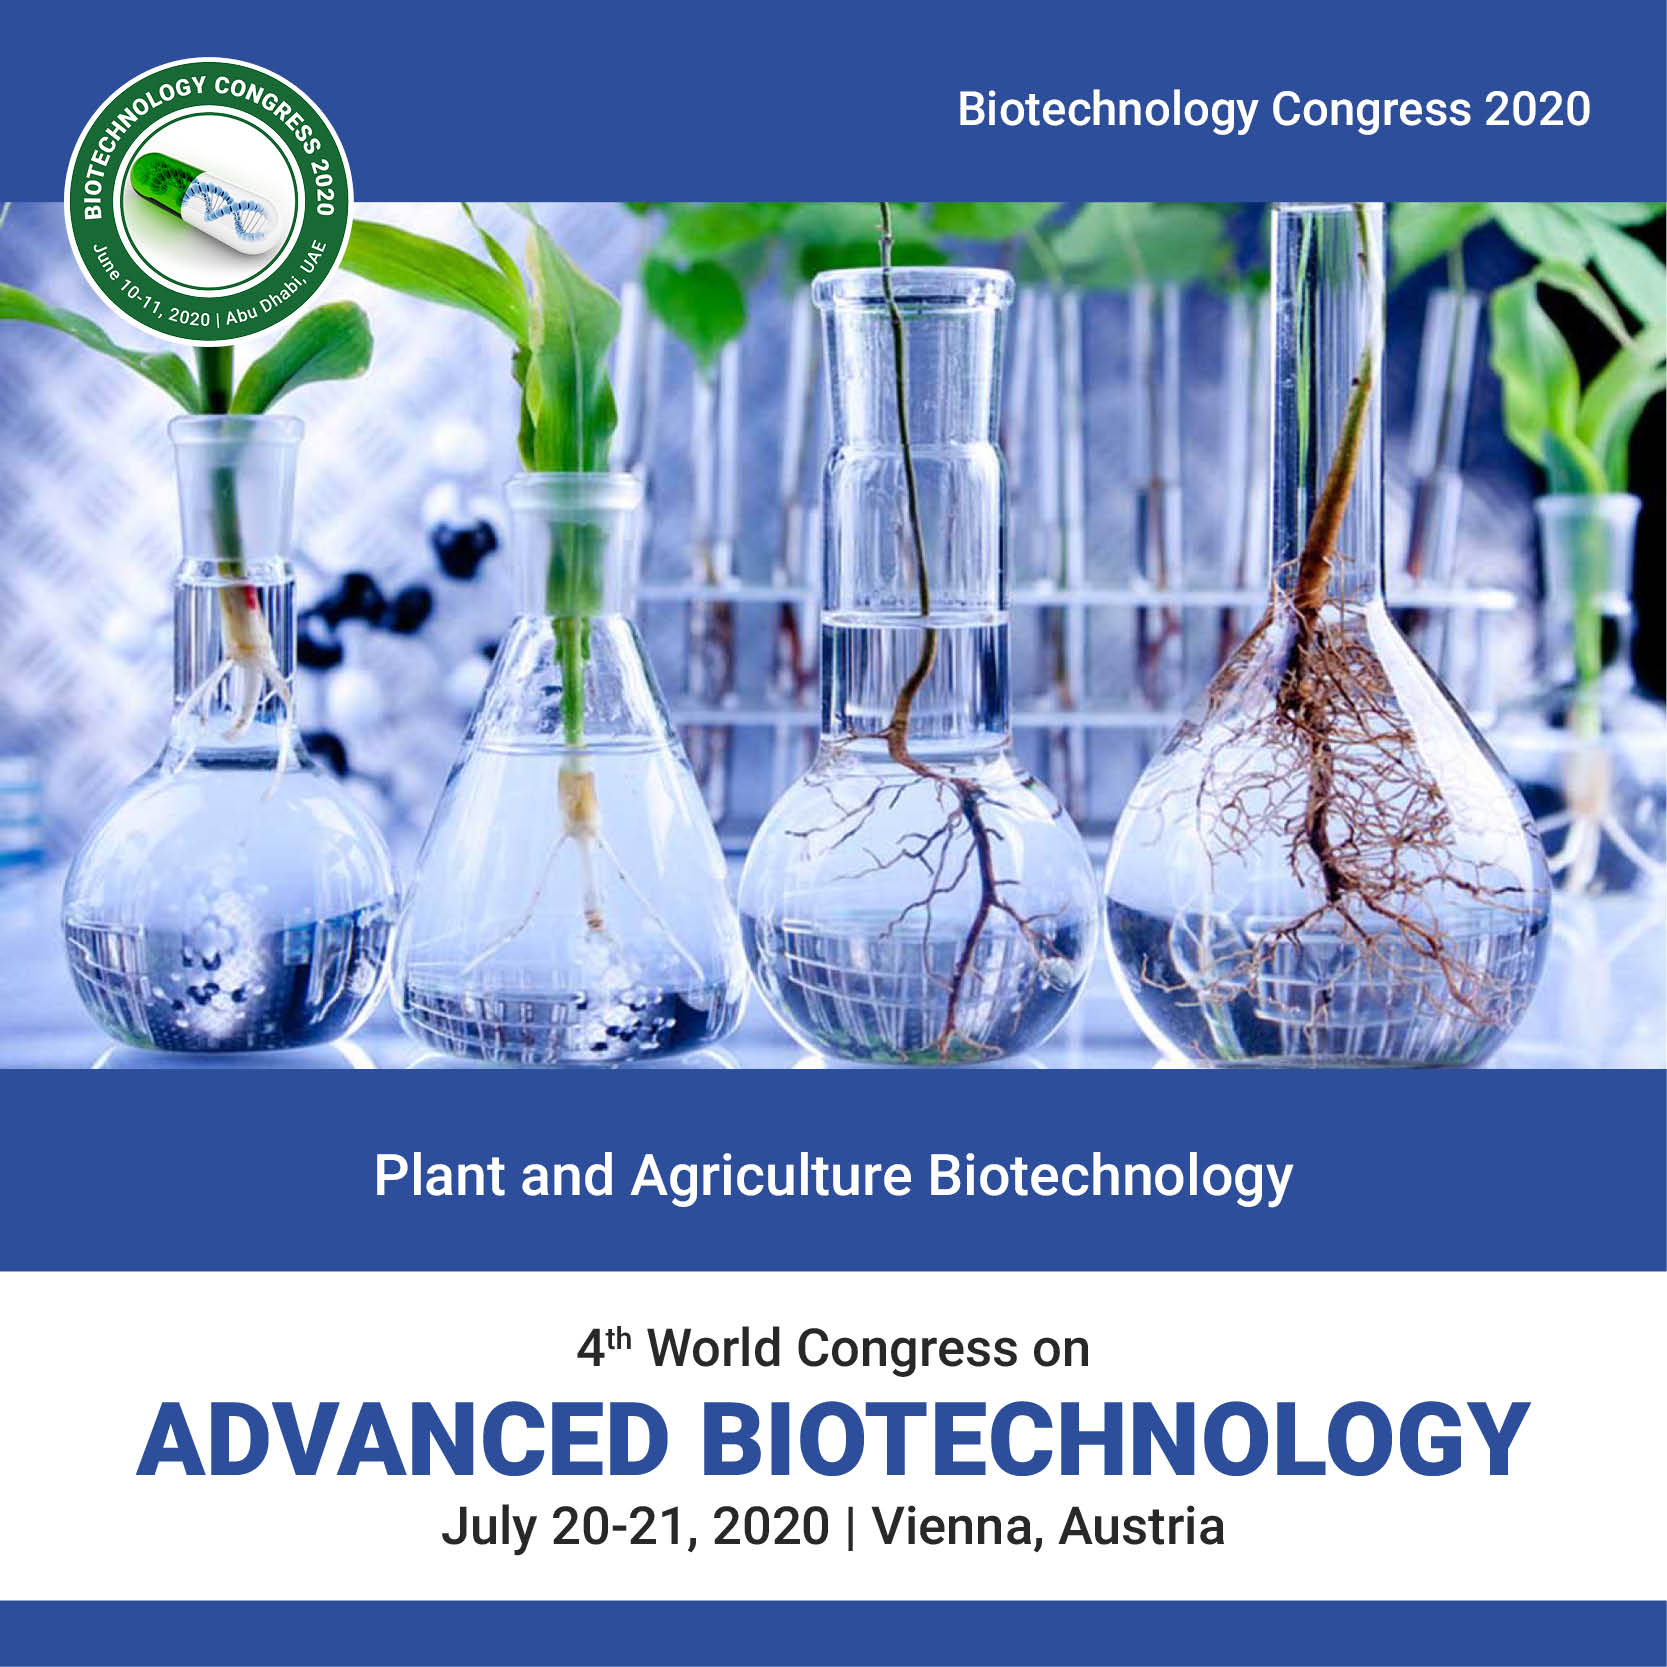 Plant and Agriculture Biotechnology Photo